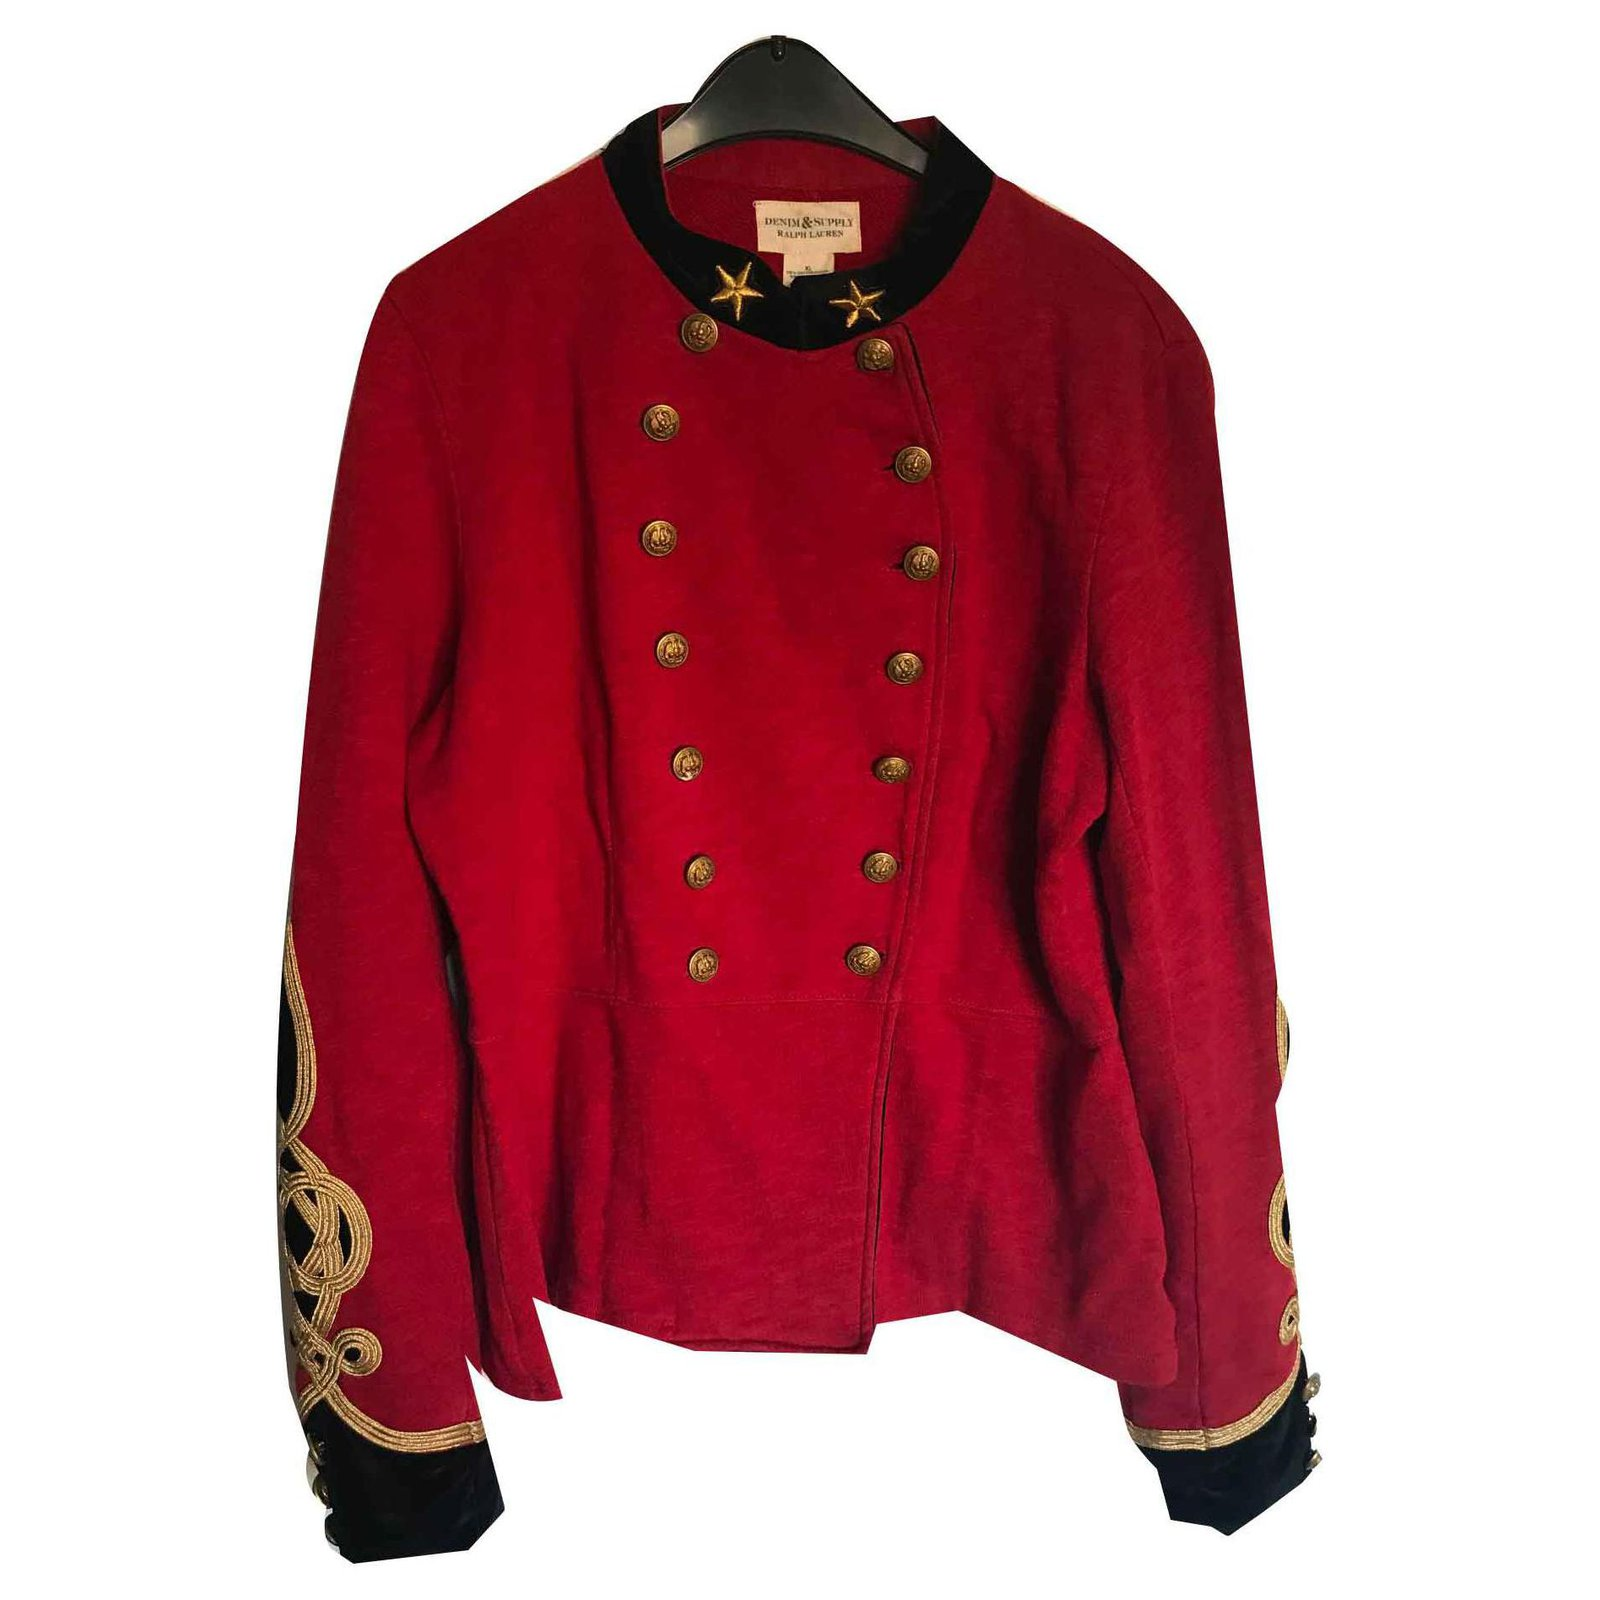 Vestes Ralph Lauren Officier Coton Rouge